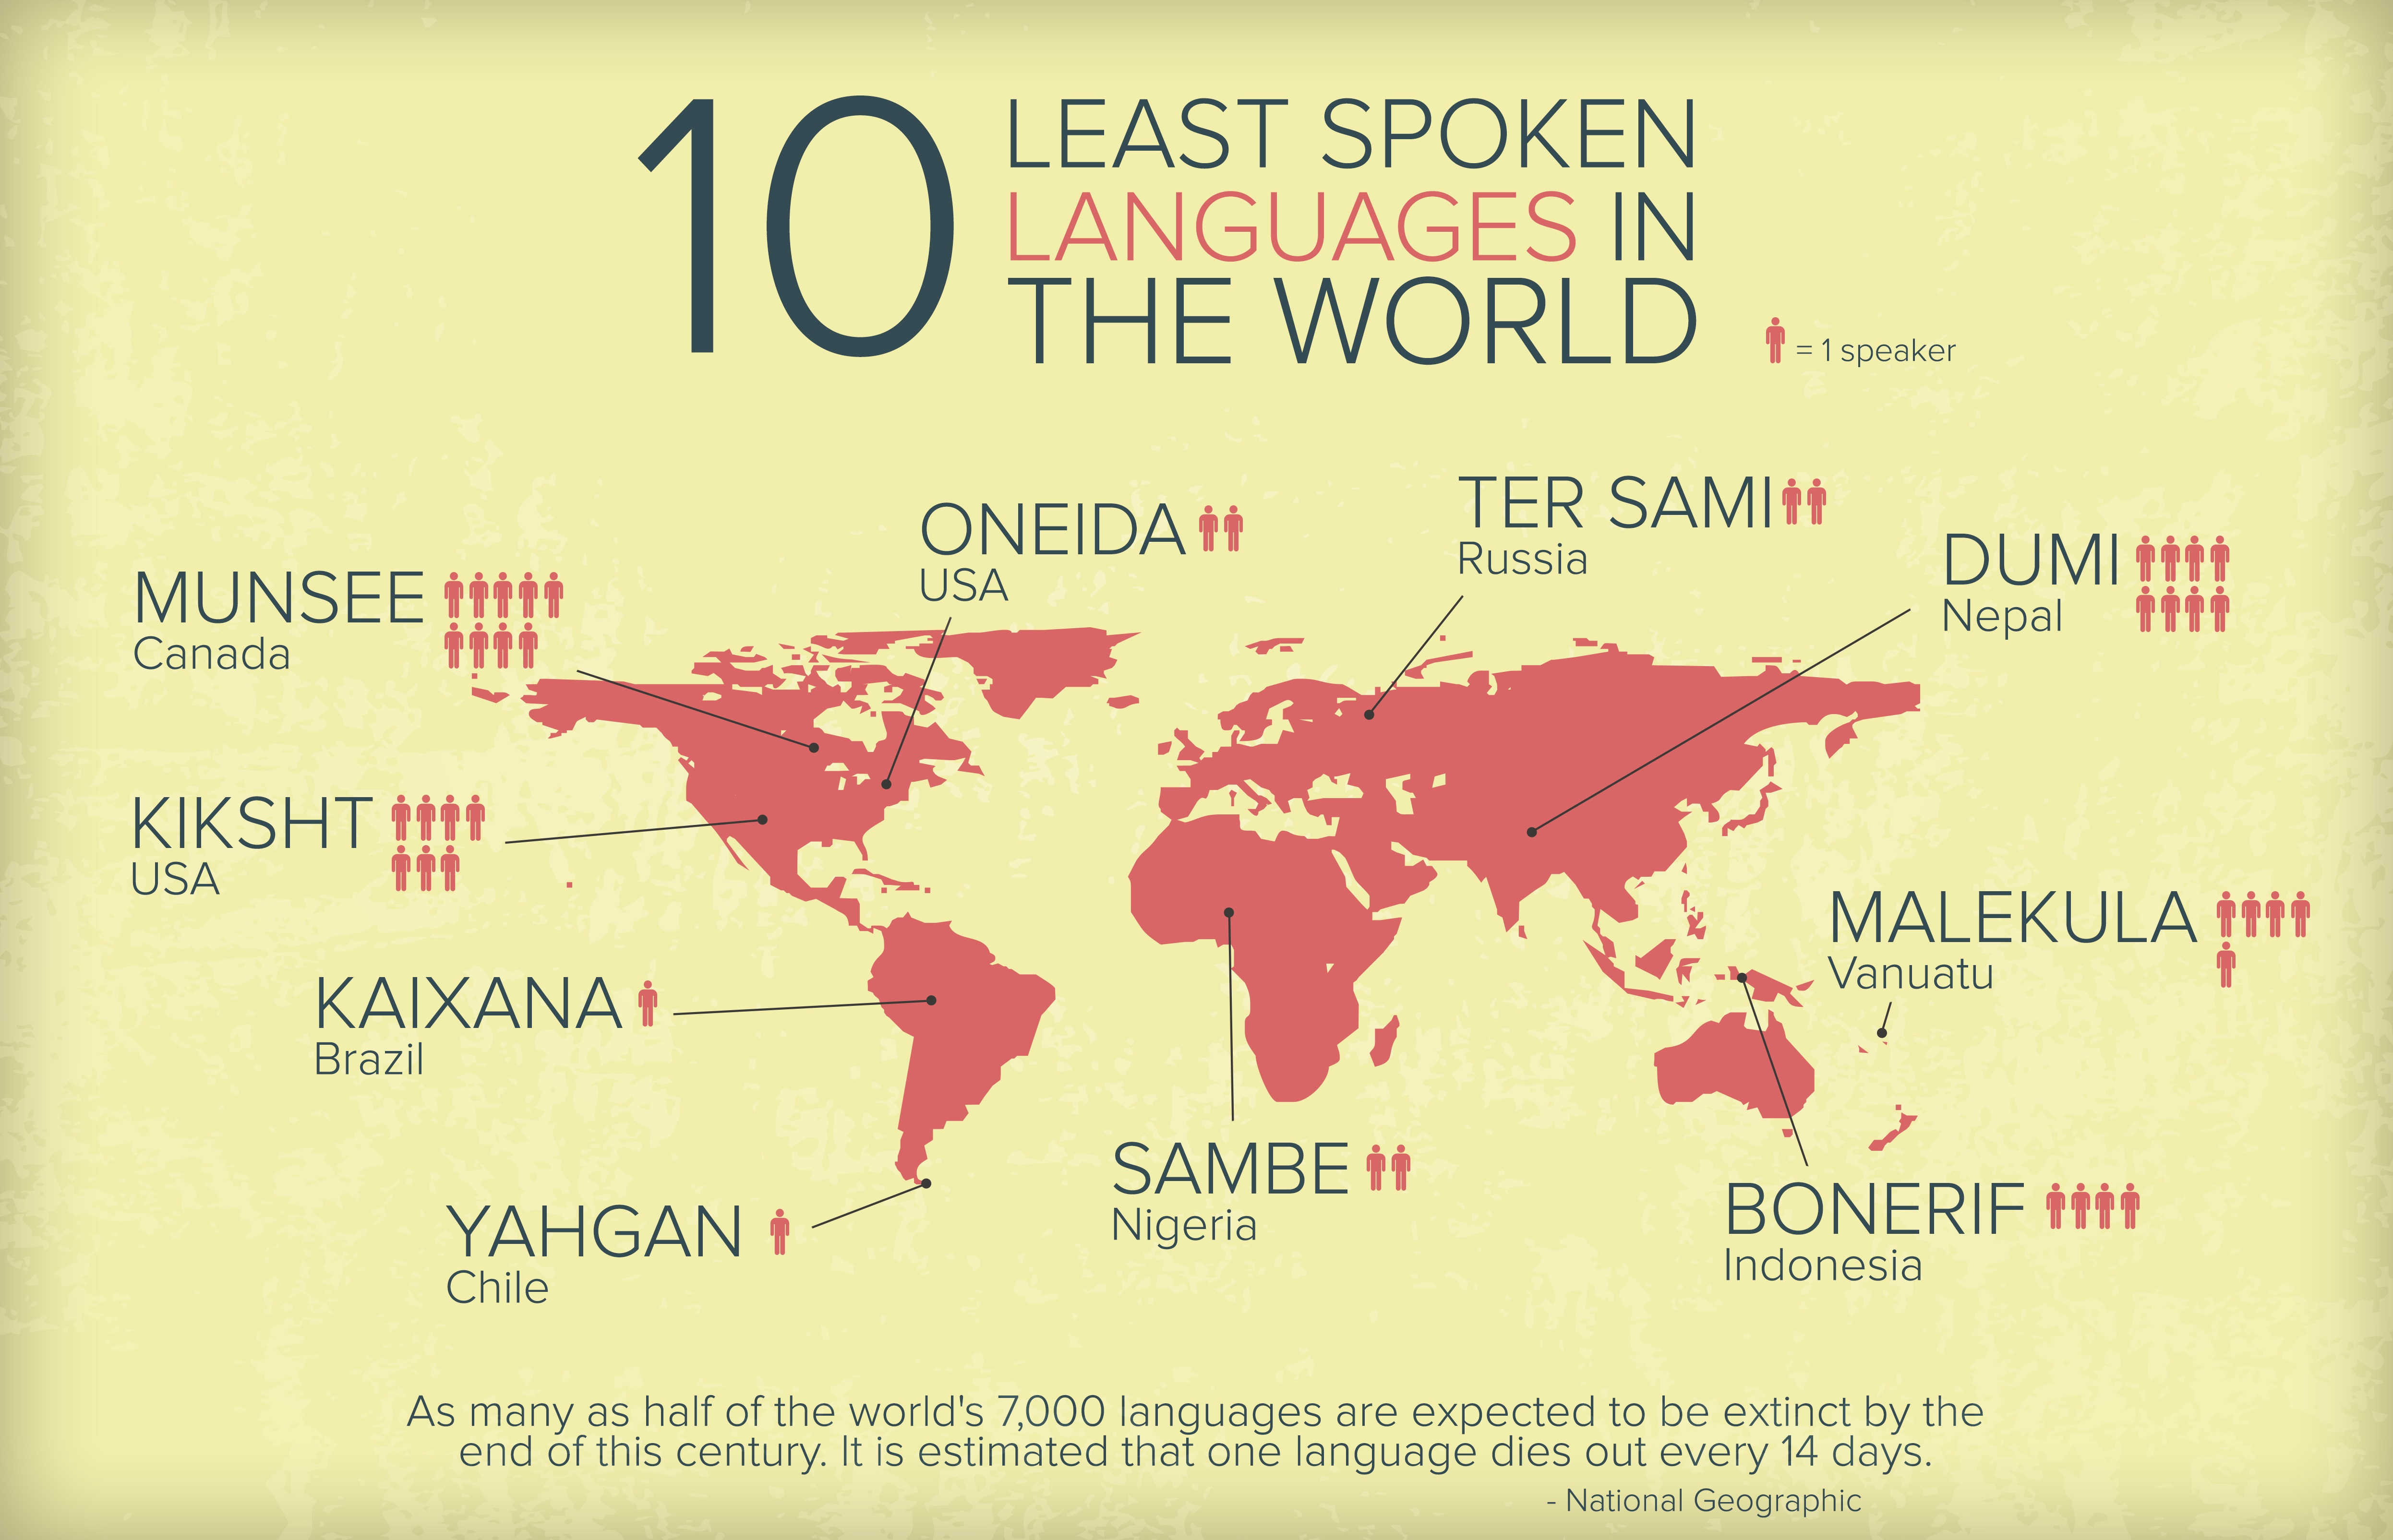 Least Spoken Languages In The World - Languages by number of speakers